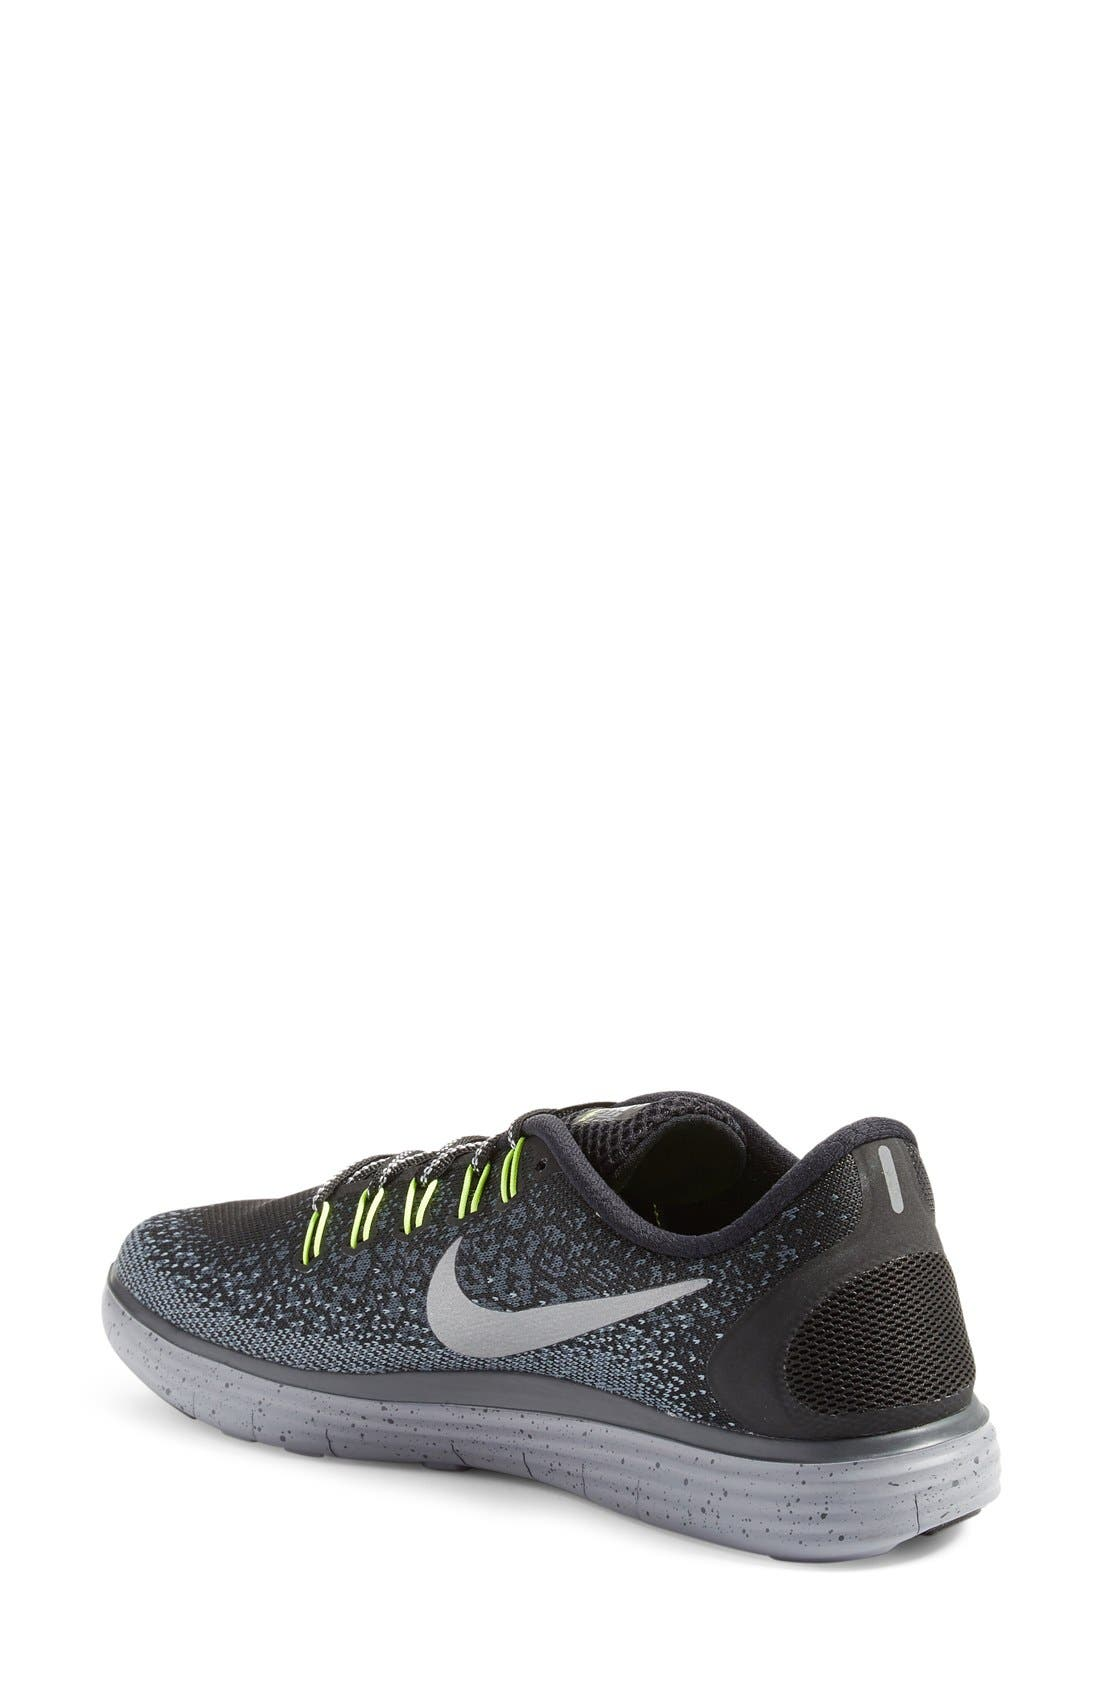 Free RN Distance Shield Running Shoe,                             Alternate thumbnail 5, color,